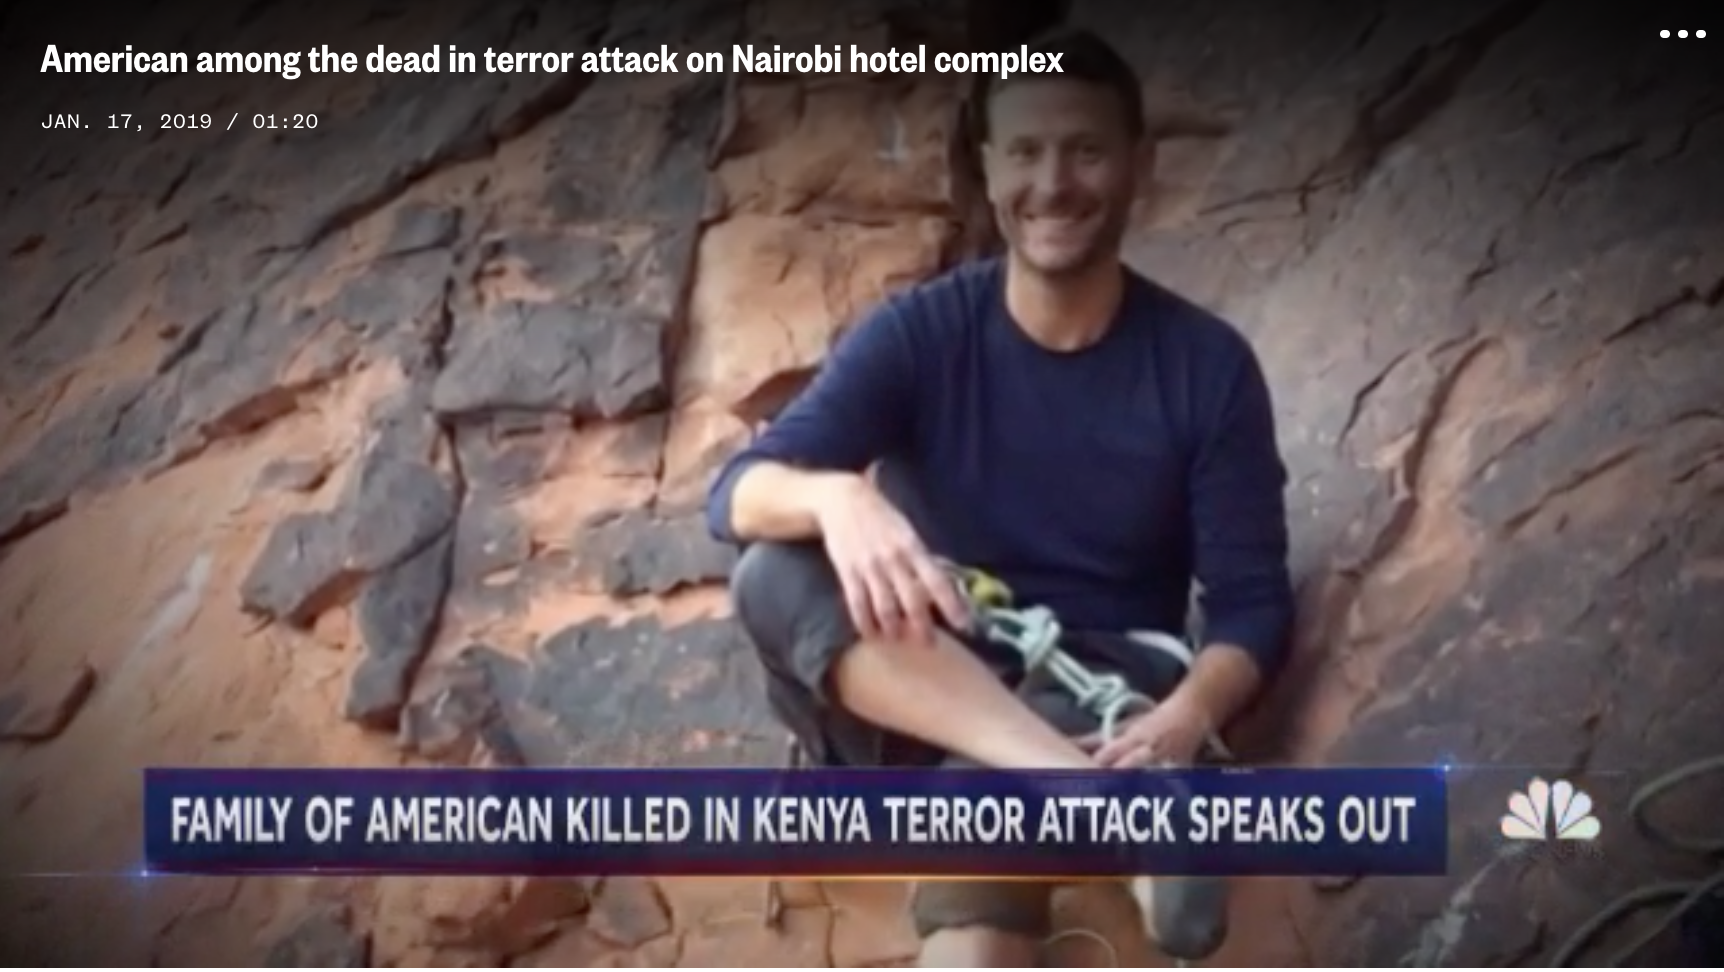 Death toll rises to 21 in attack on luxury hotel complex in Nairobi, Kenya – NBC News (image)